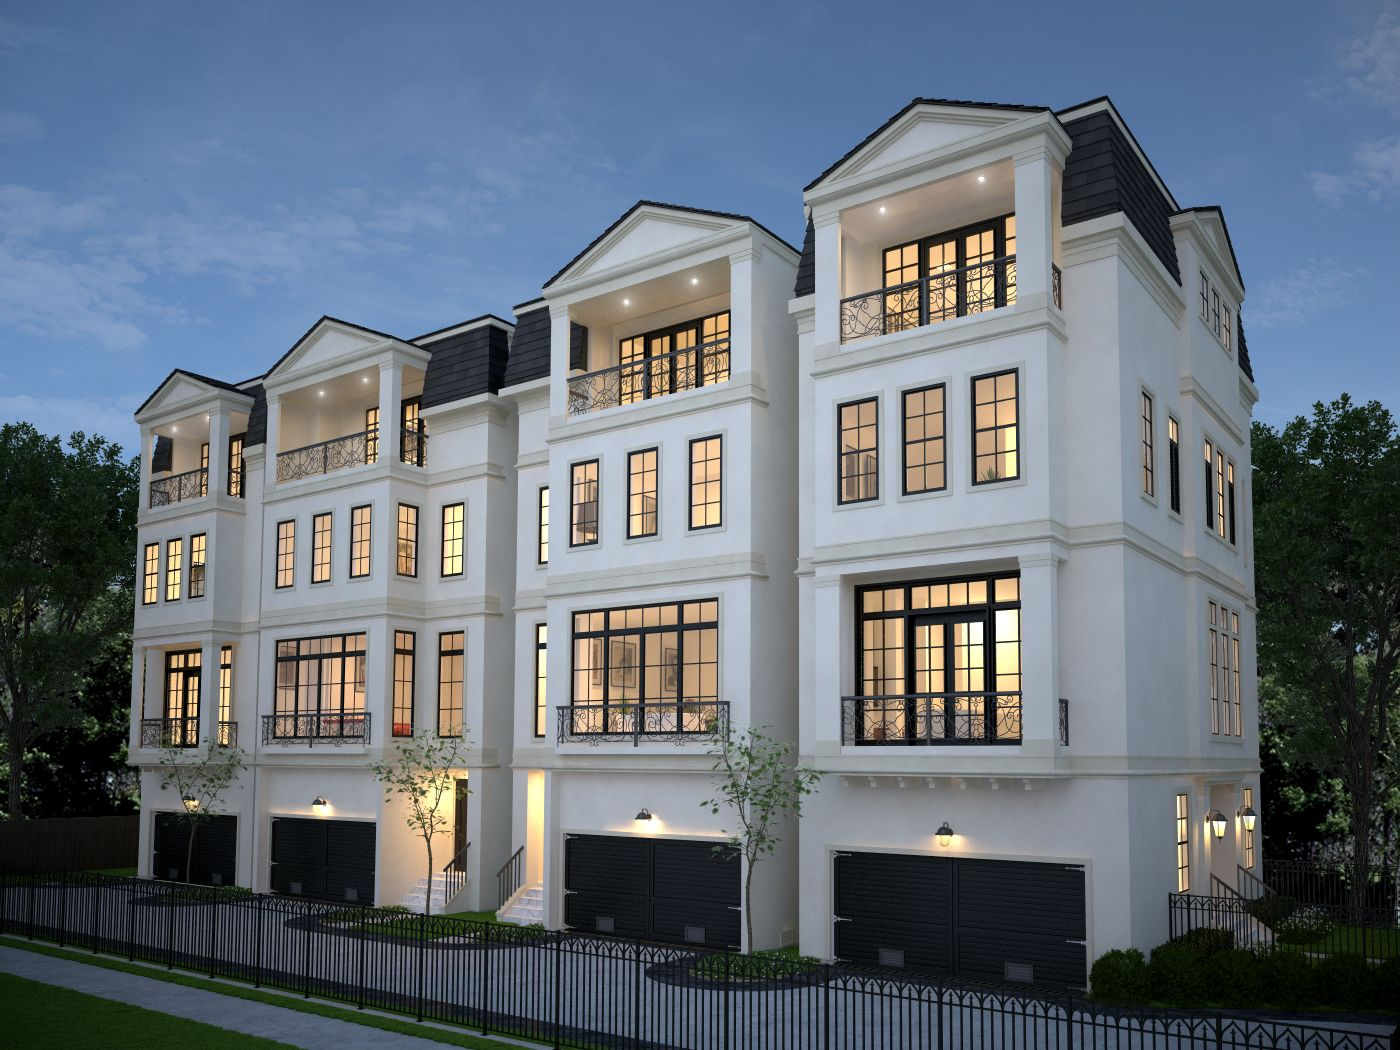 Four 4 story townhomes in houston by preston wood assoc for 4 story house